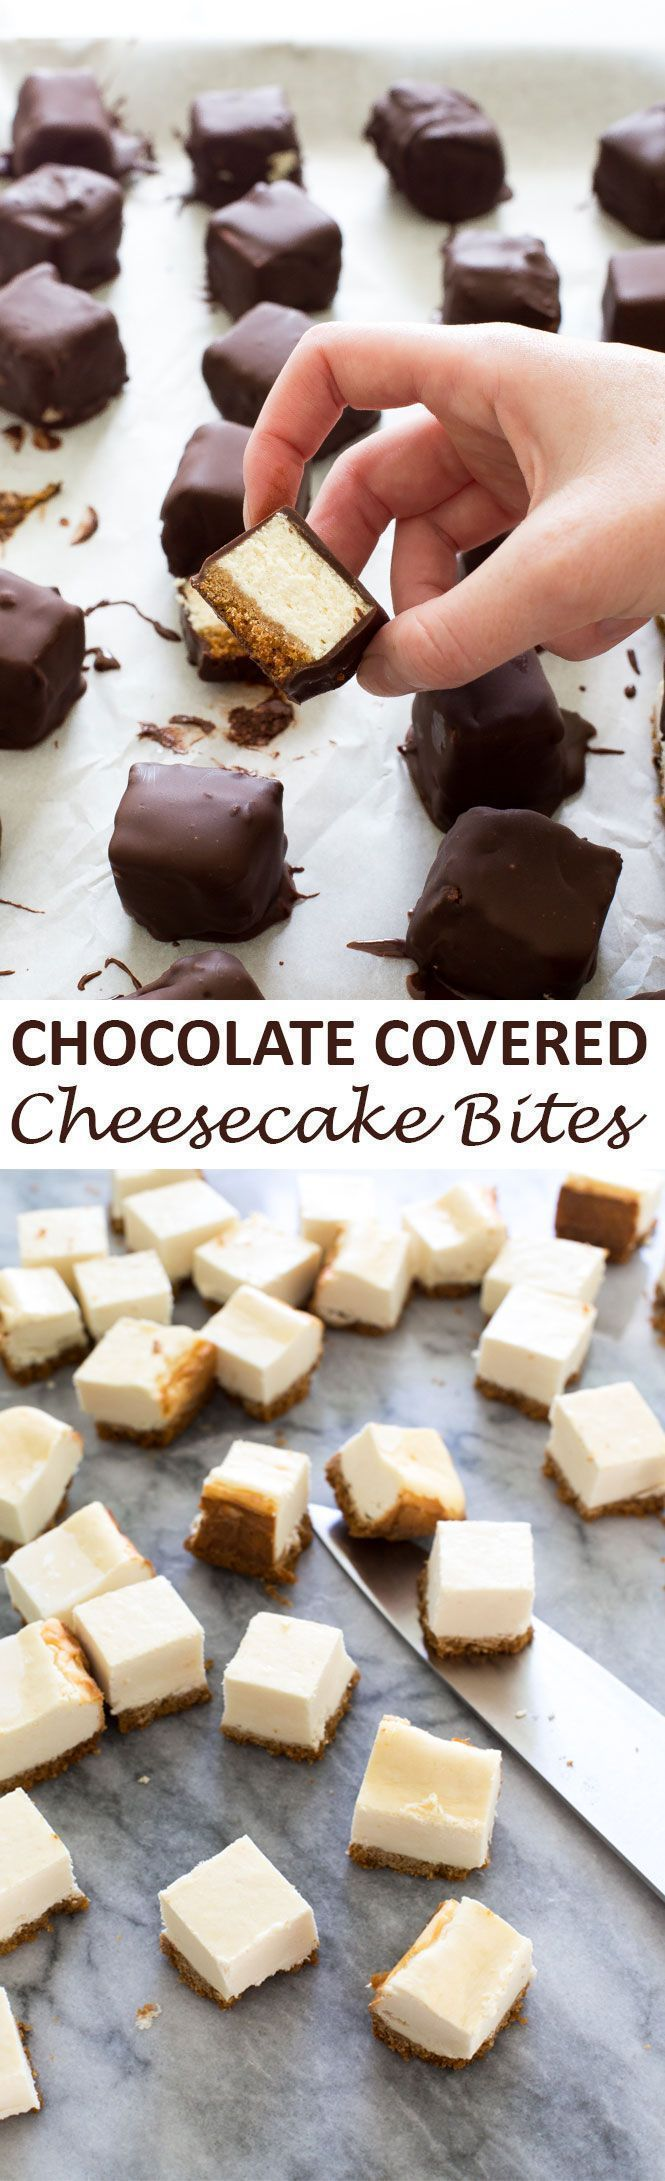 Chocolate Covered Cheesecake Bites. Perfect bite-sized cheesecake covered in a sweet chocolate shell coating. They are extremely addicting! | http://chefsavvy.com #recipe #chocolate #cheesecake #bites #dessert